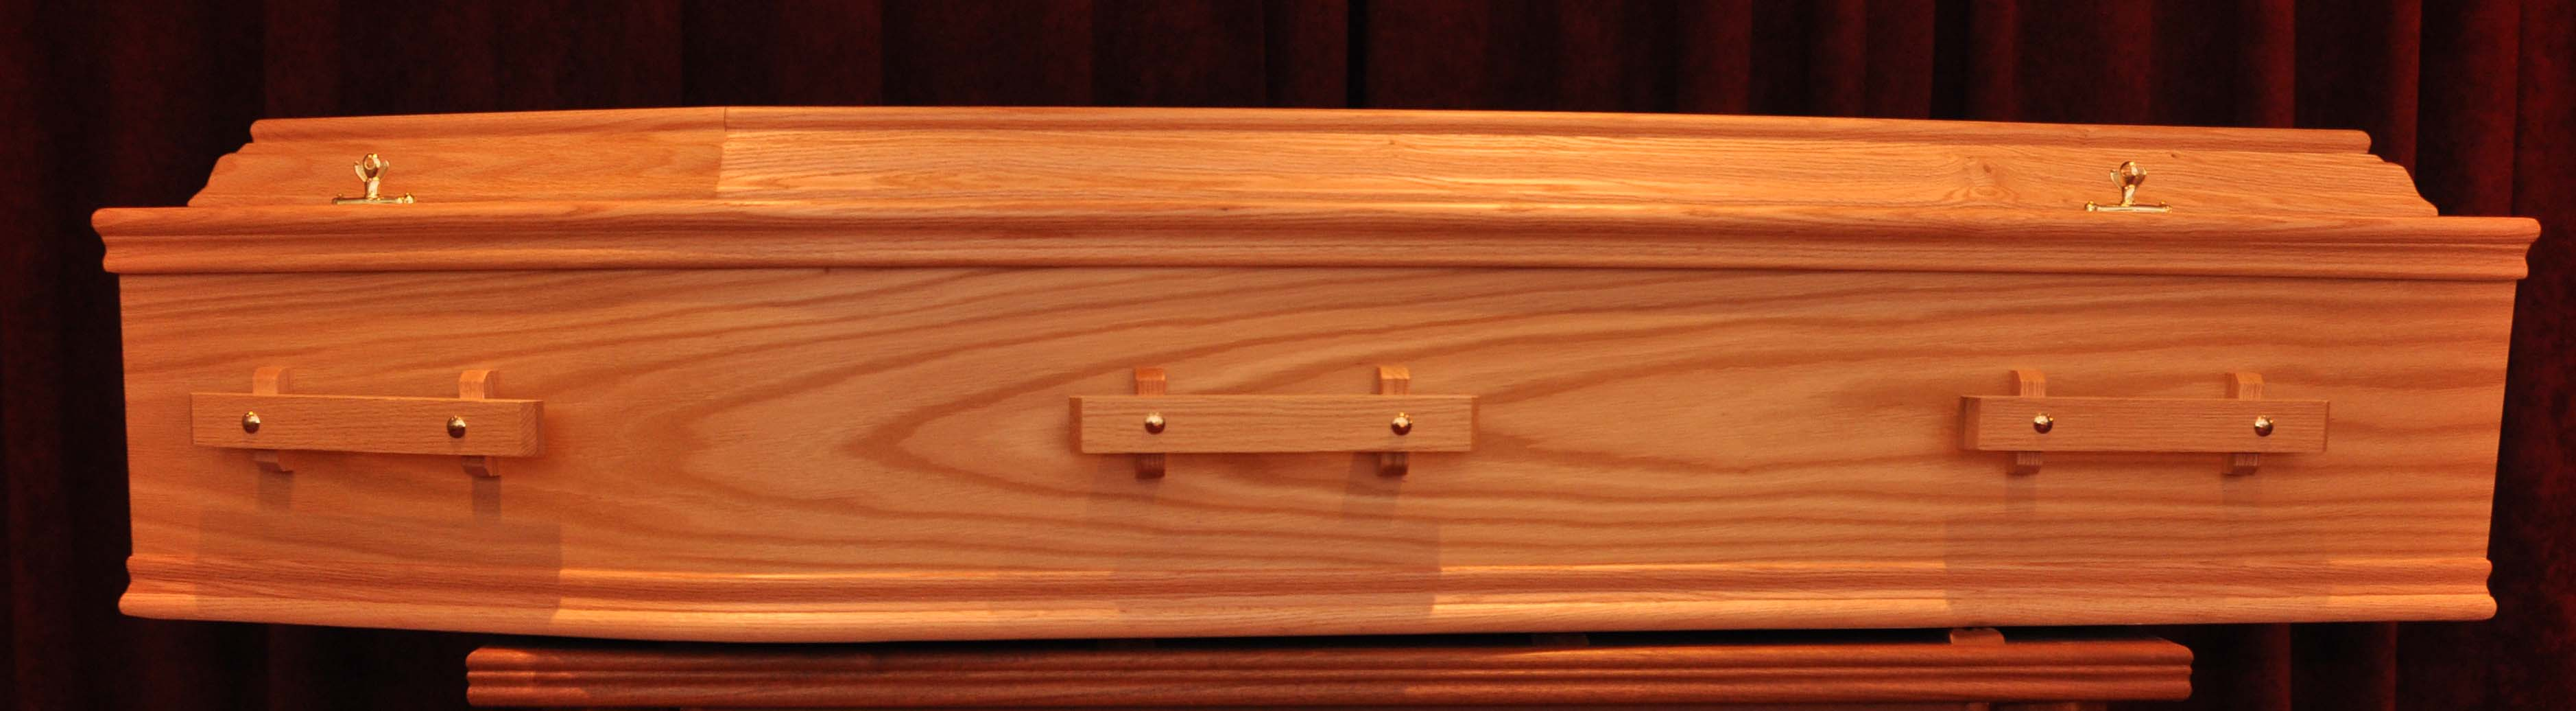 Veneer oak timber handle